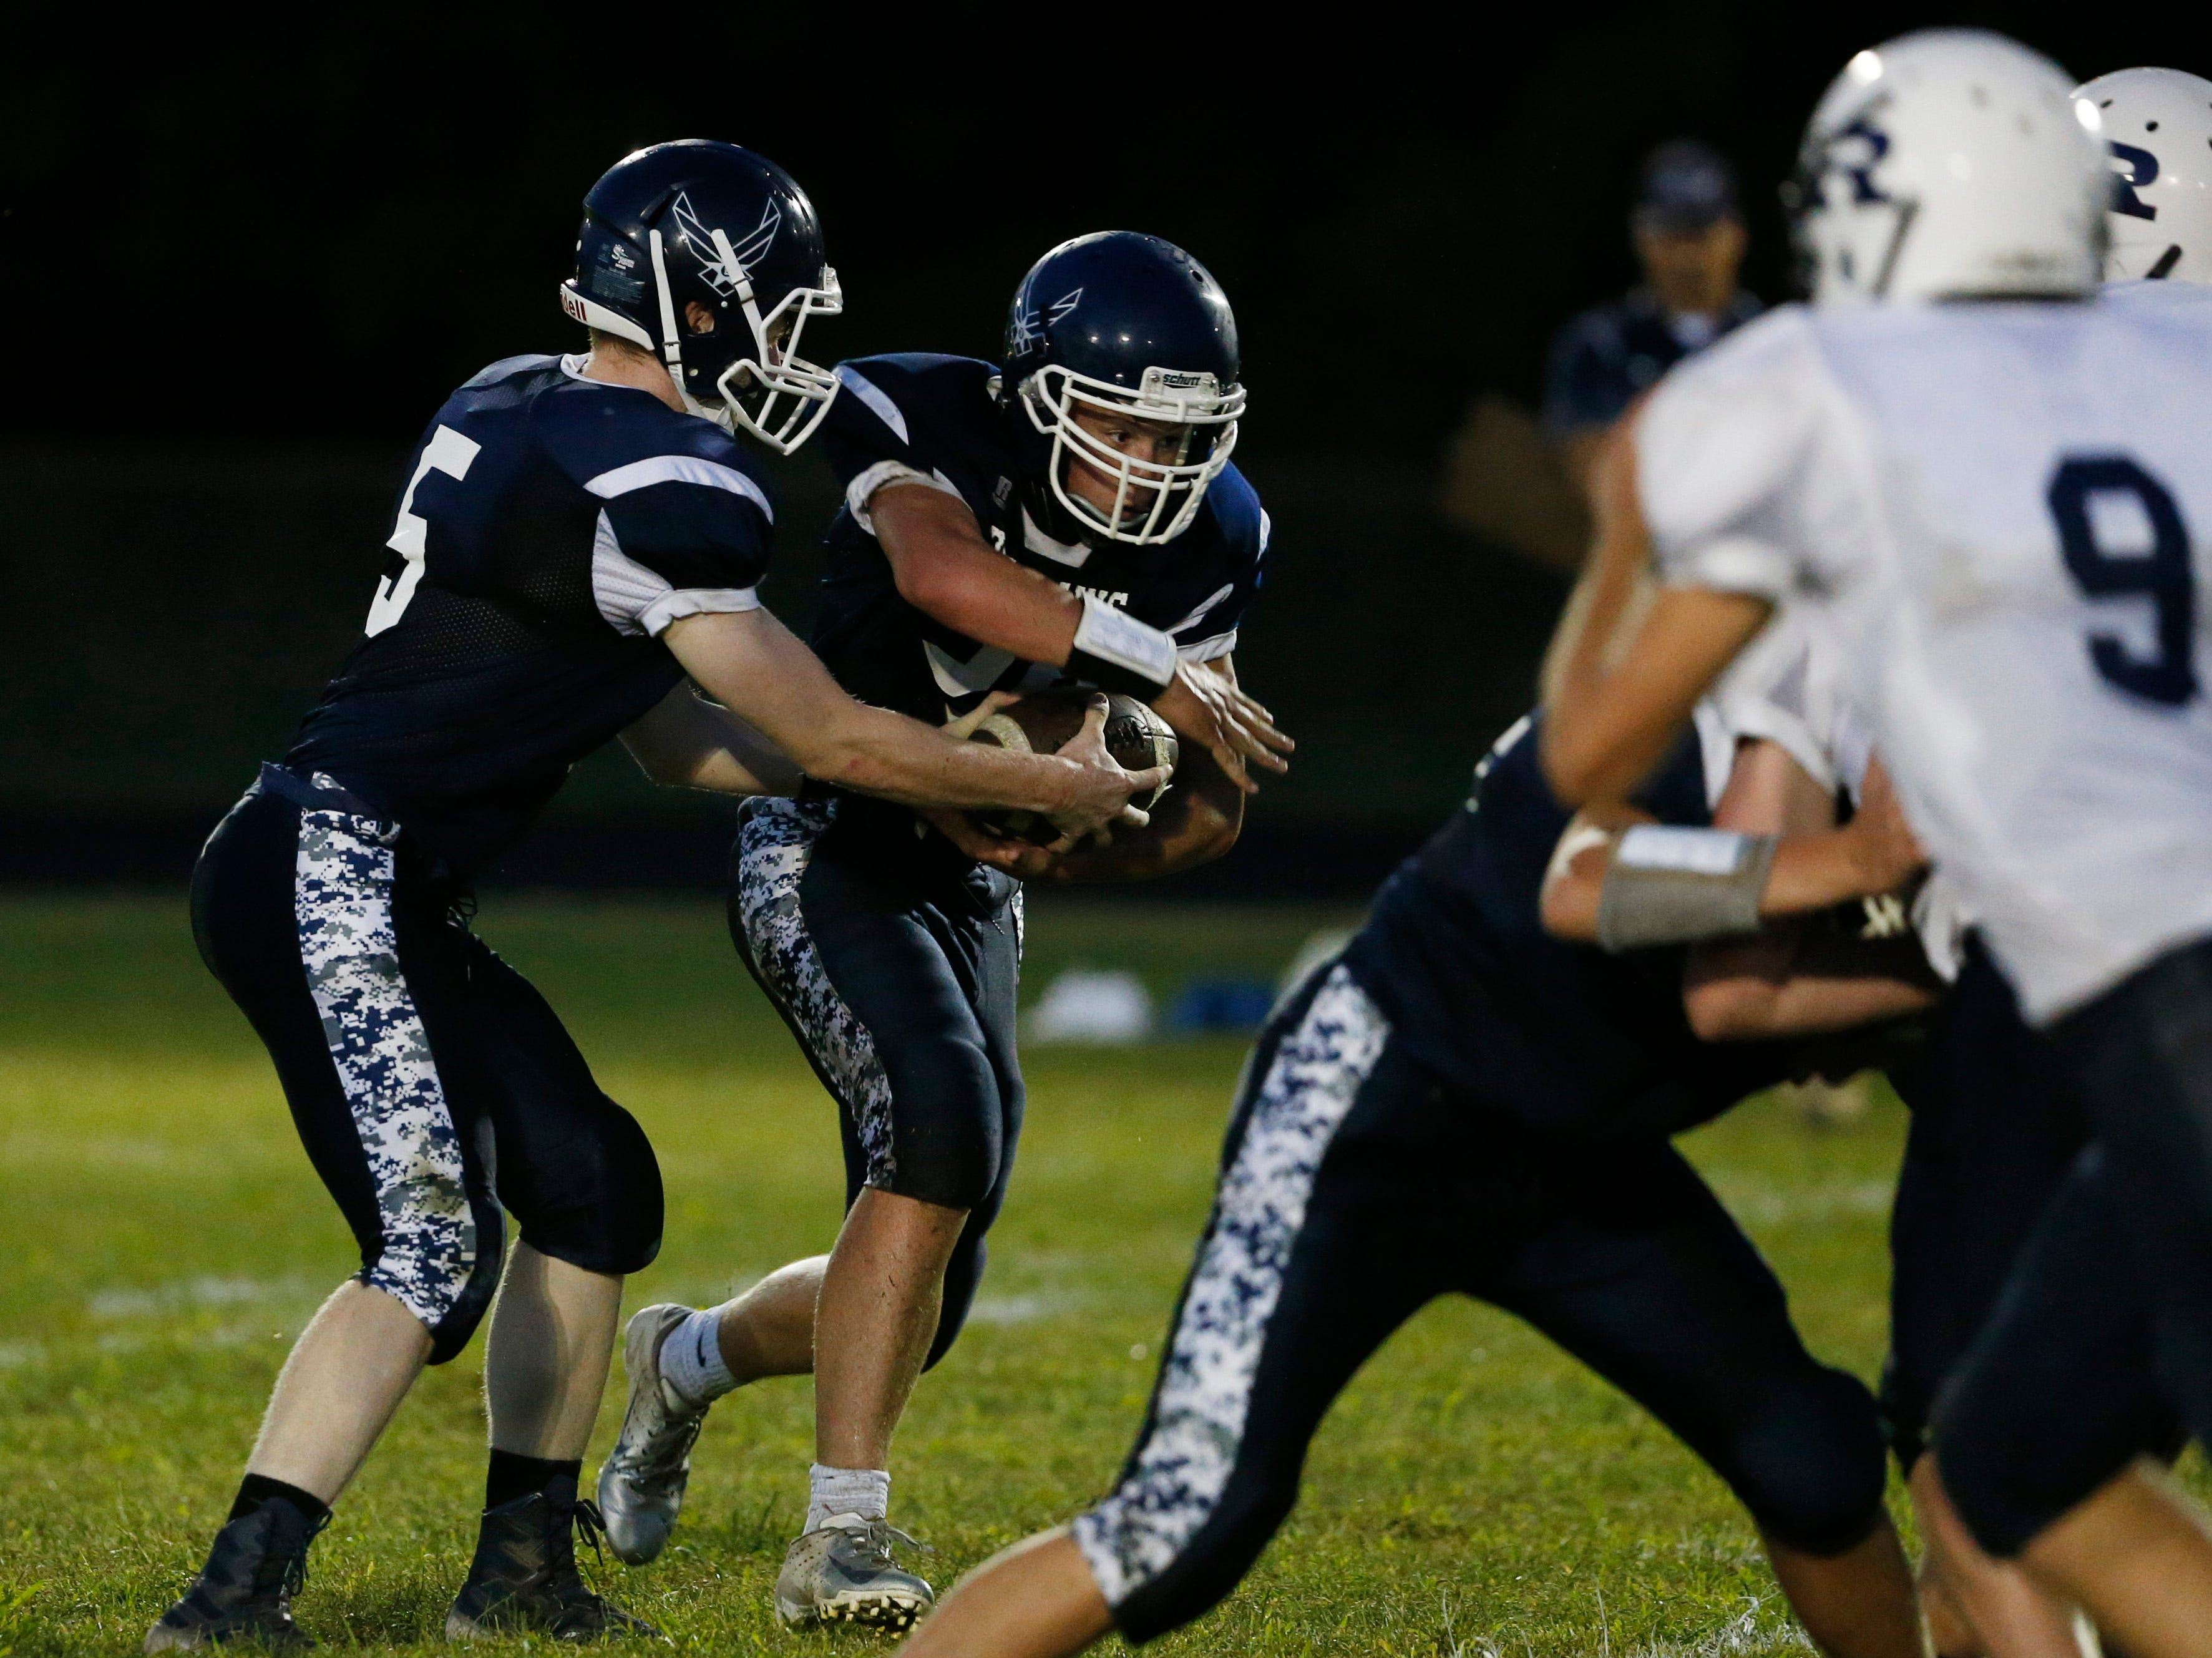 Pine Plains's Andrew Holsopple fakes a hand off to Michael Kelly during Friday's game versus Roscoe at Stissing Mountain High School on September 7, 2018.